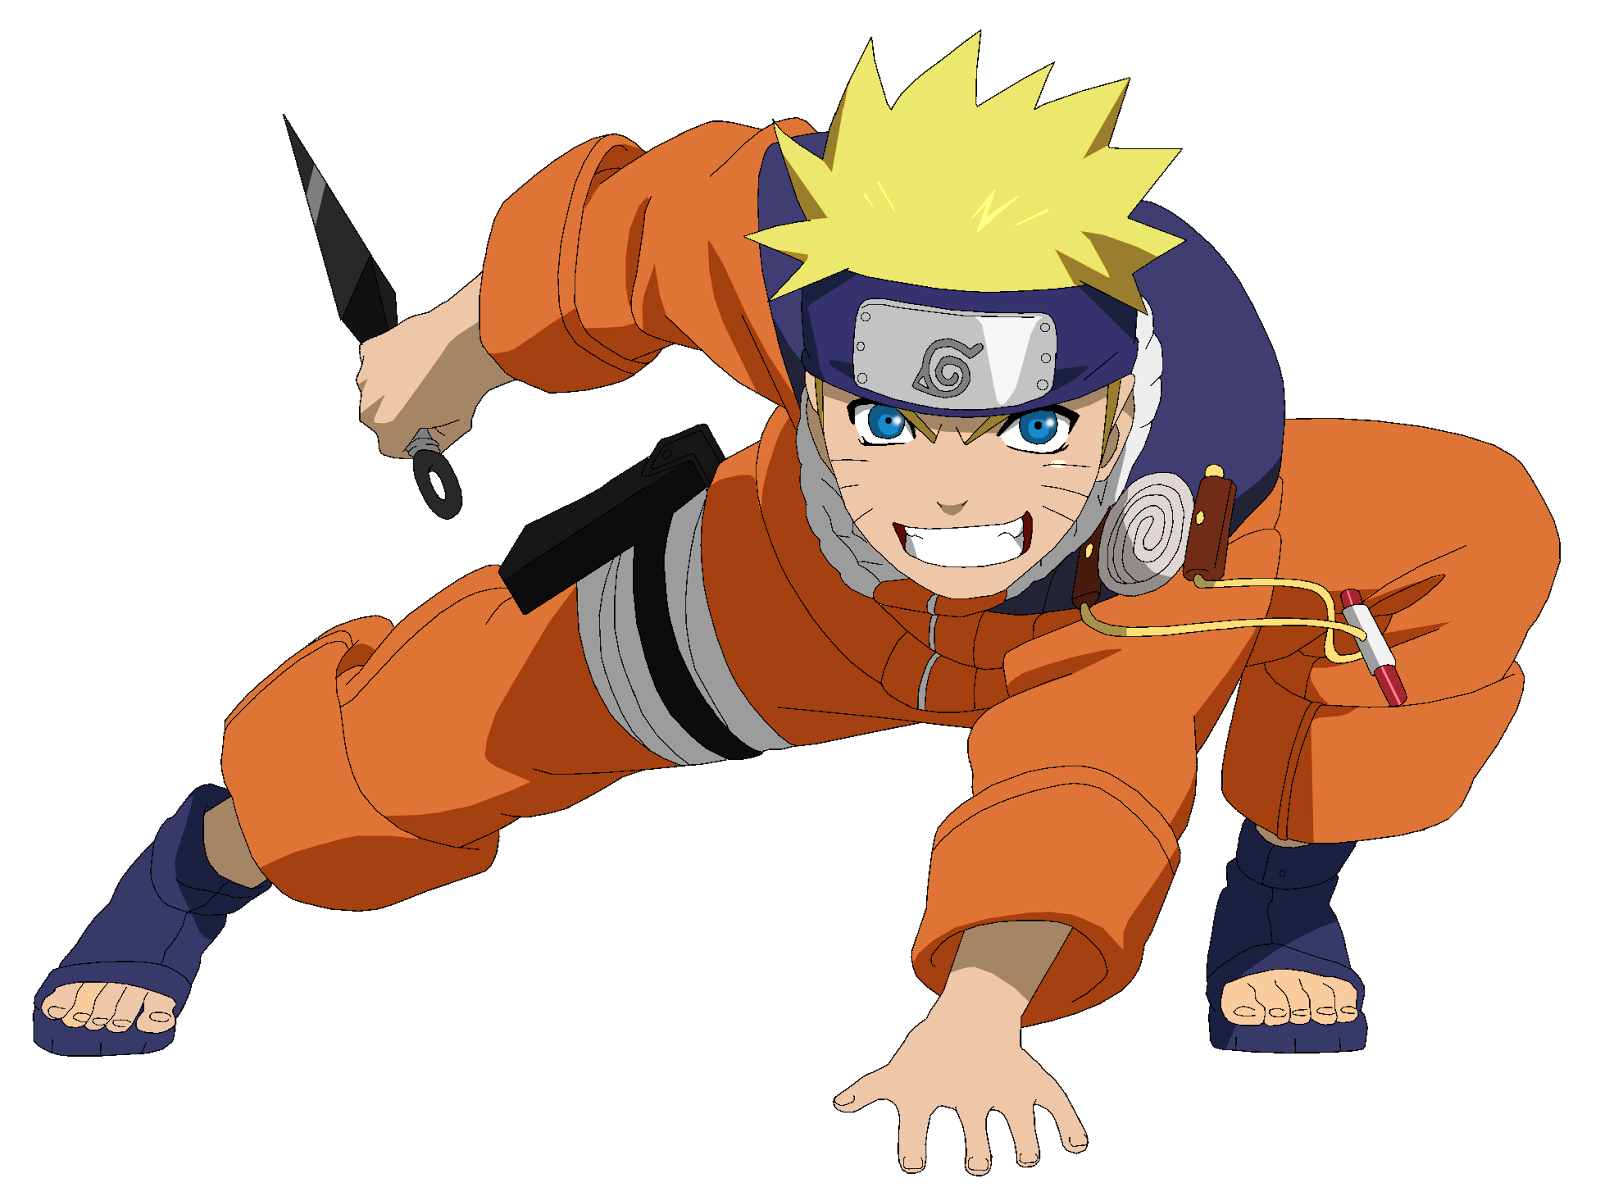 1600 x 1196 png 389kBNaruto